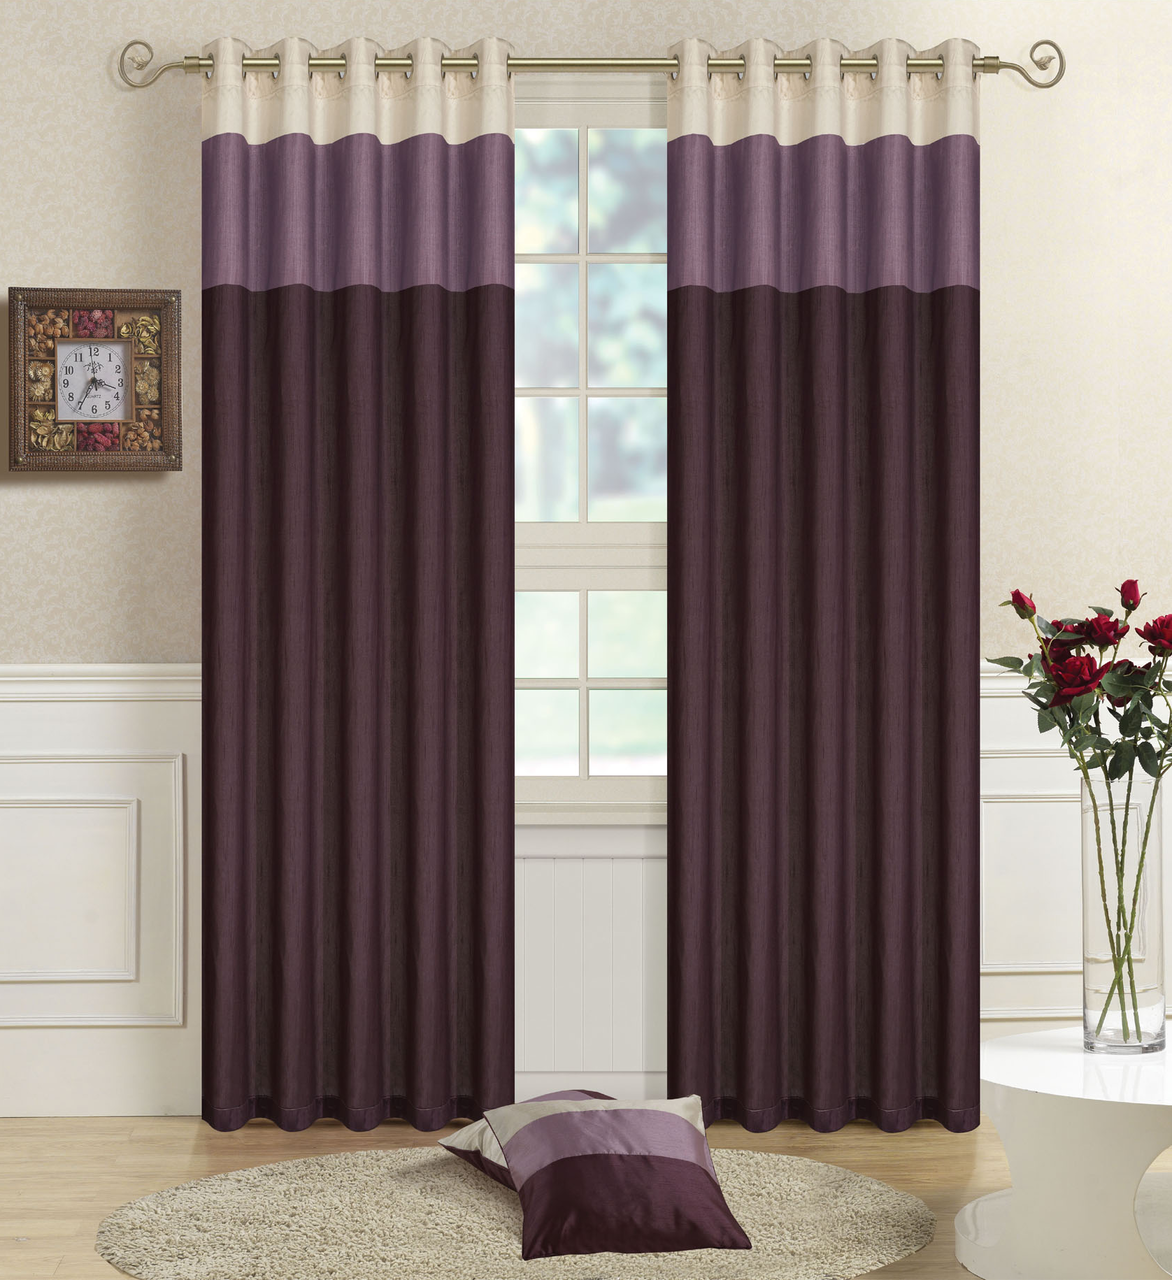 Brown bedroom curtain ideas - Purple Bedroom Curtain Ideas Bedroom Curtains